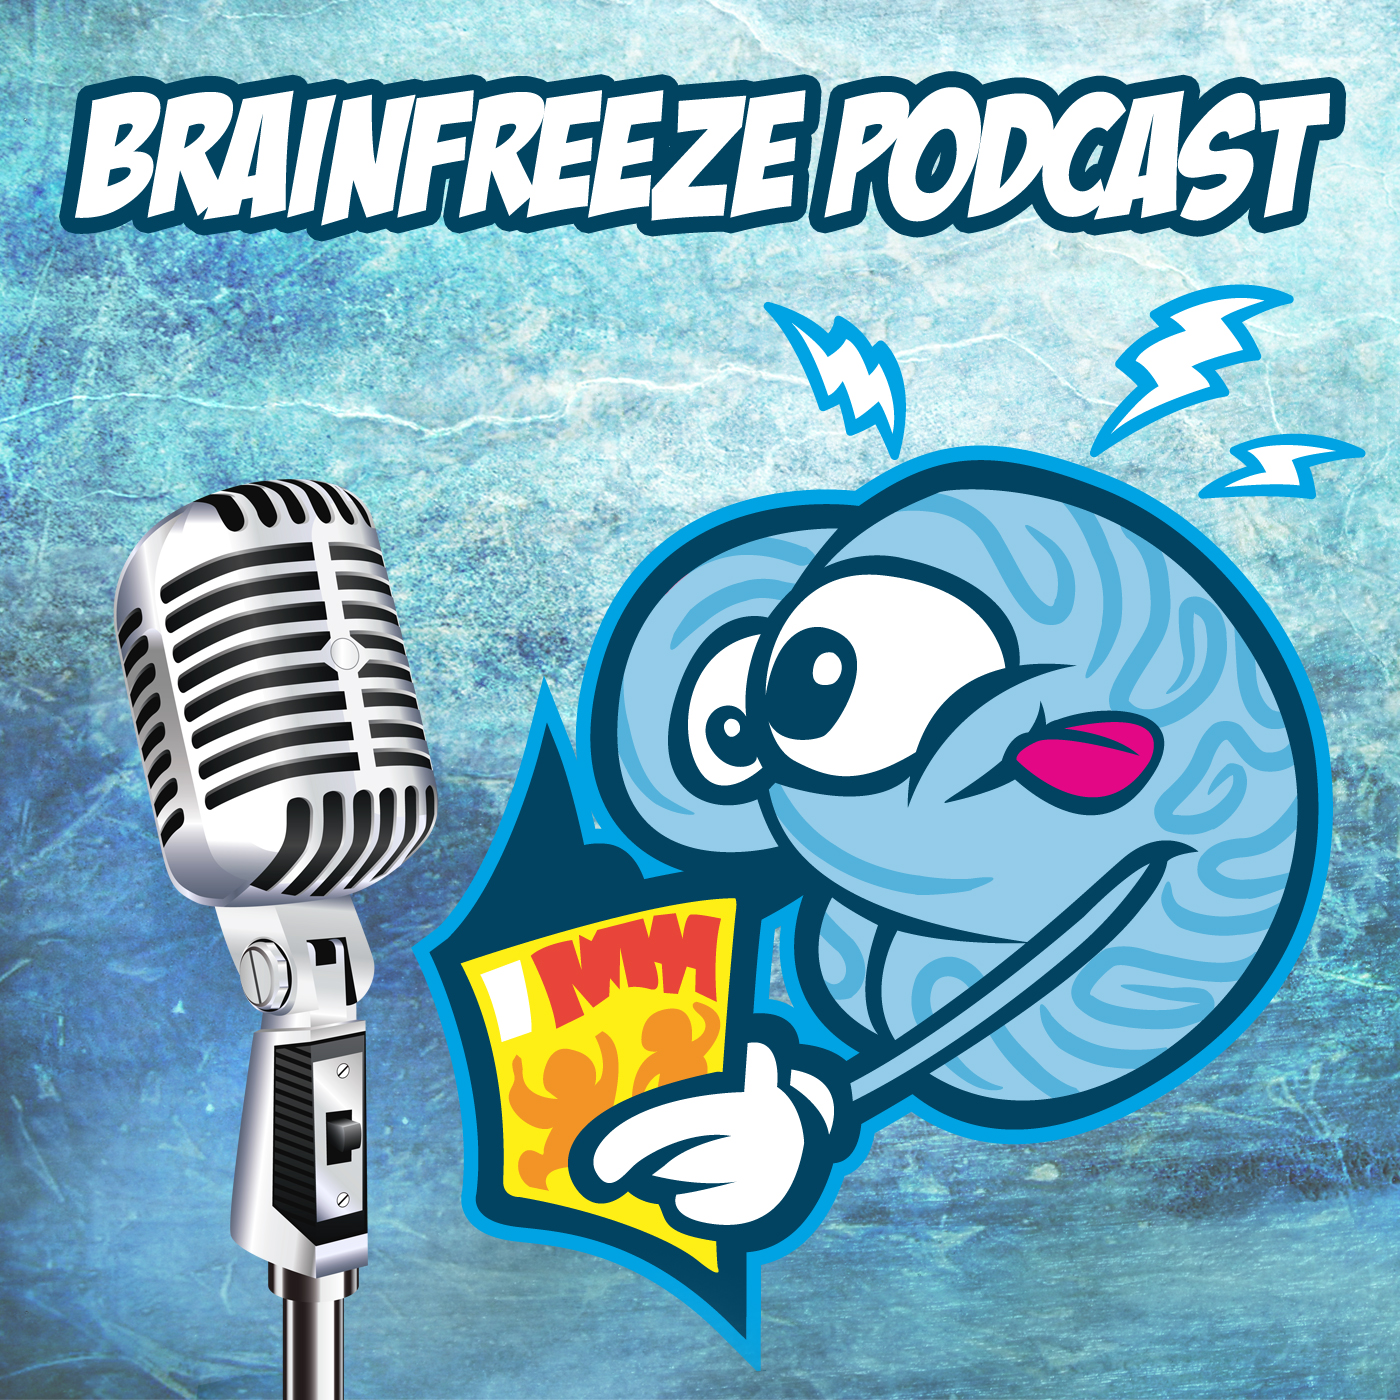 Brainfreeze Podcast